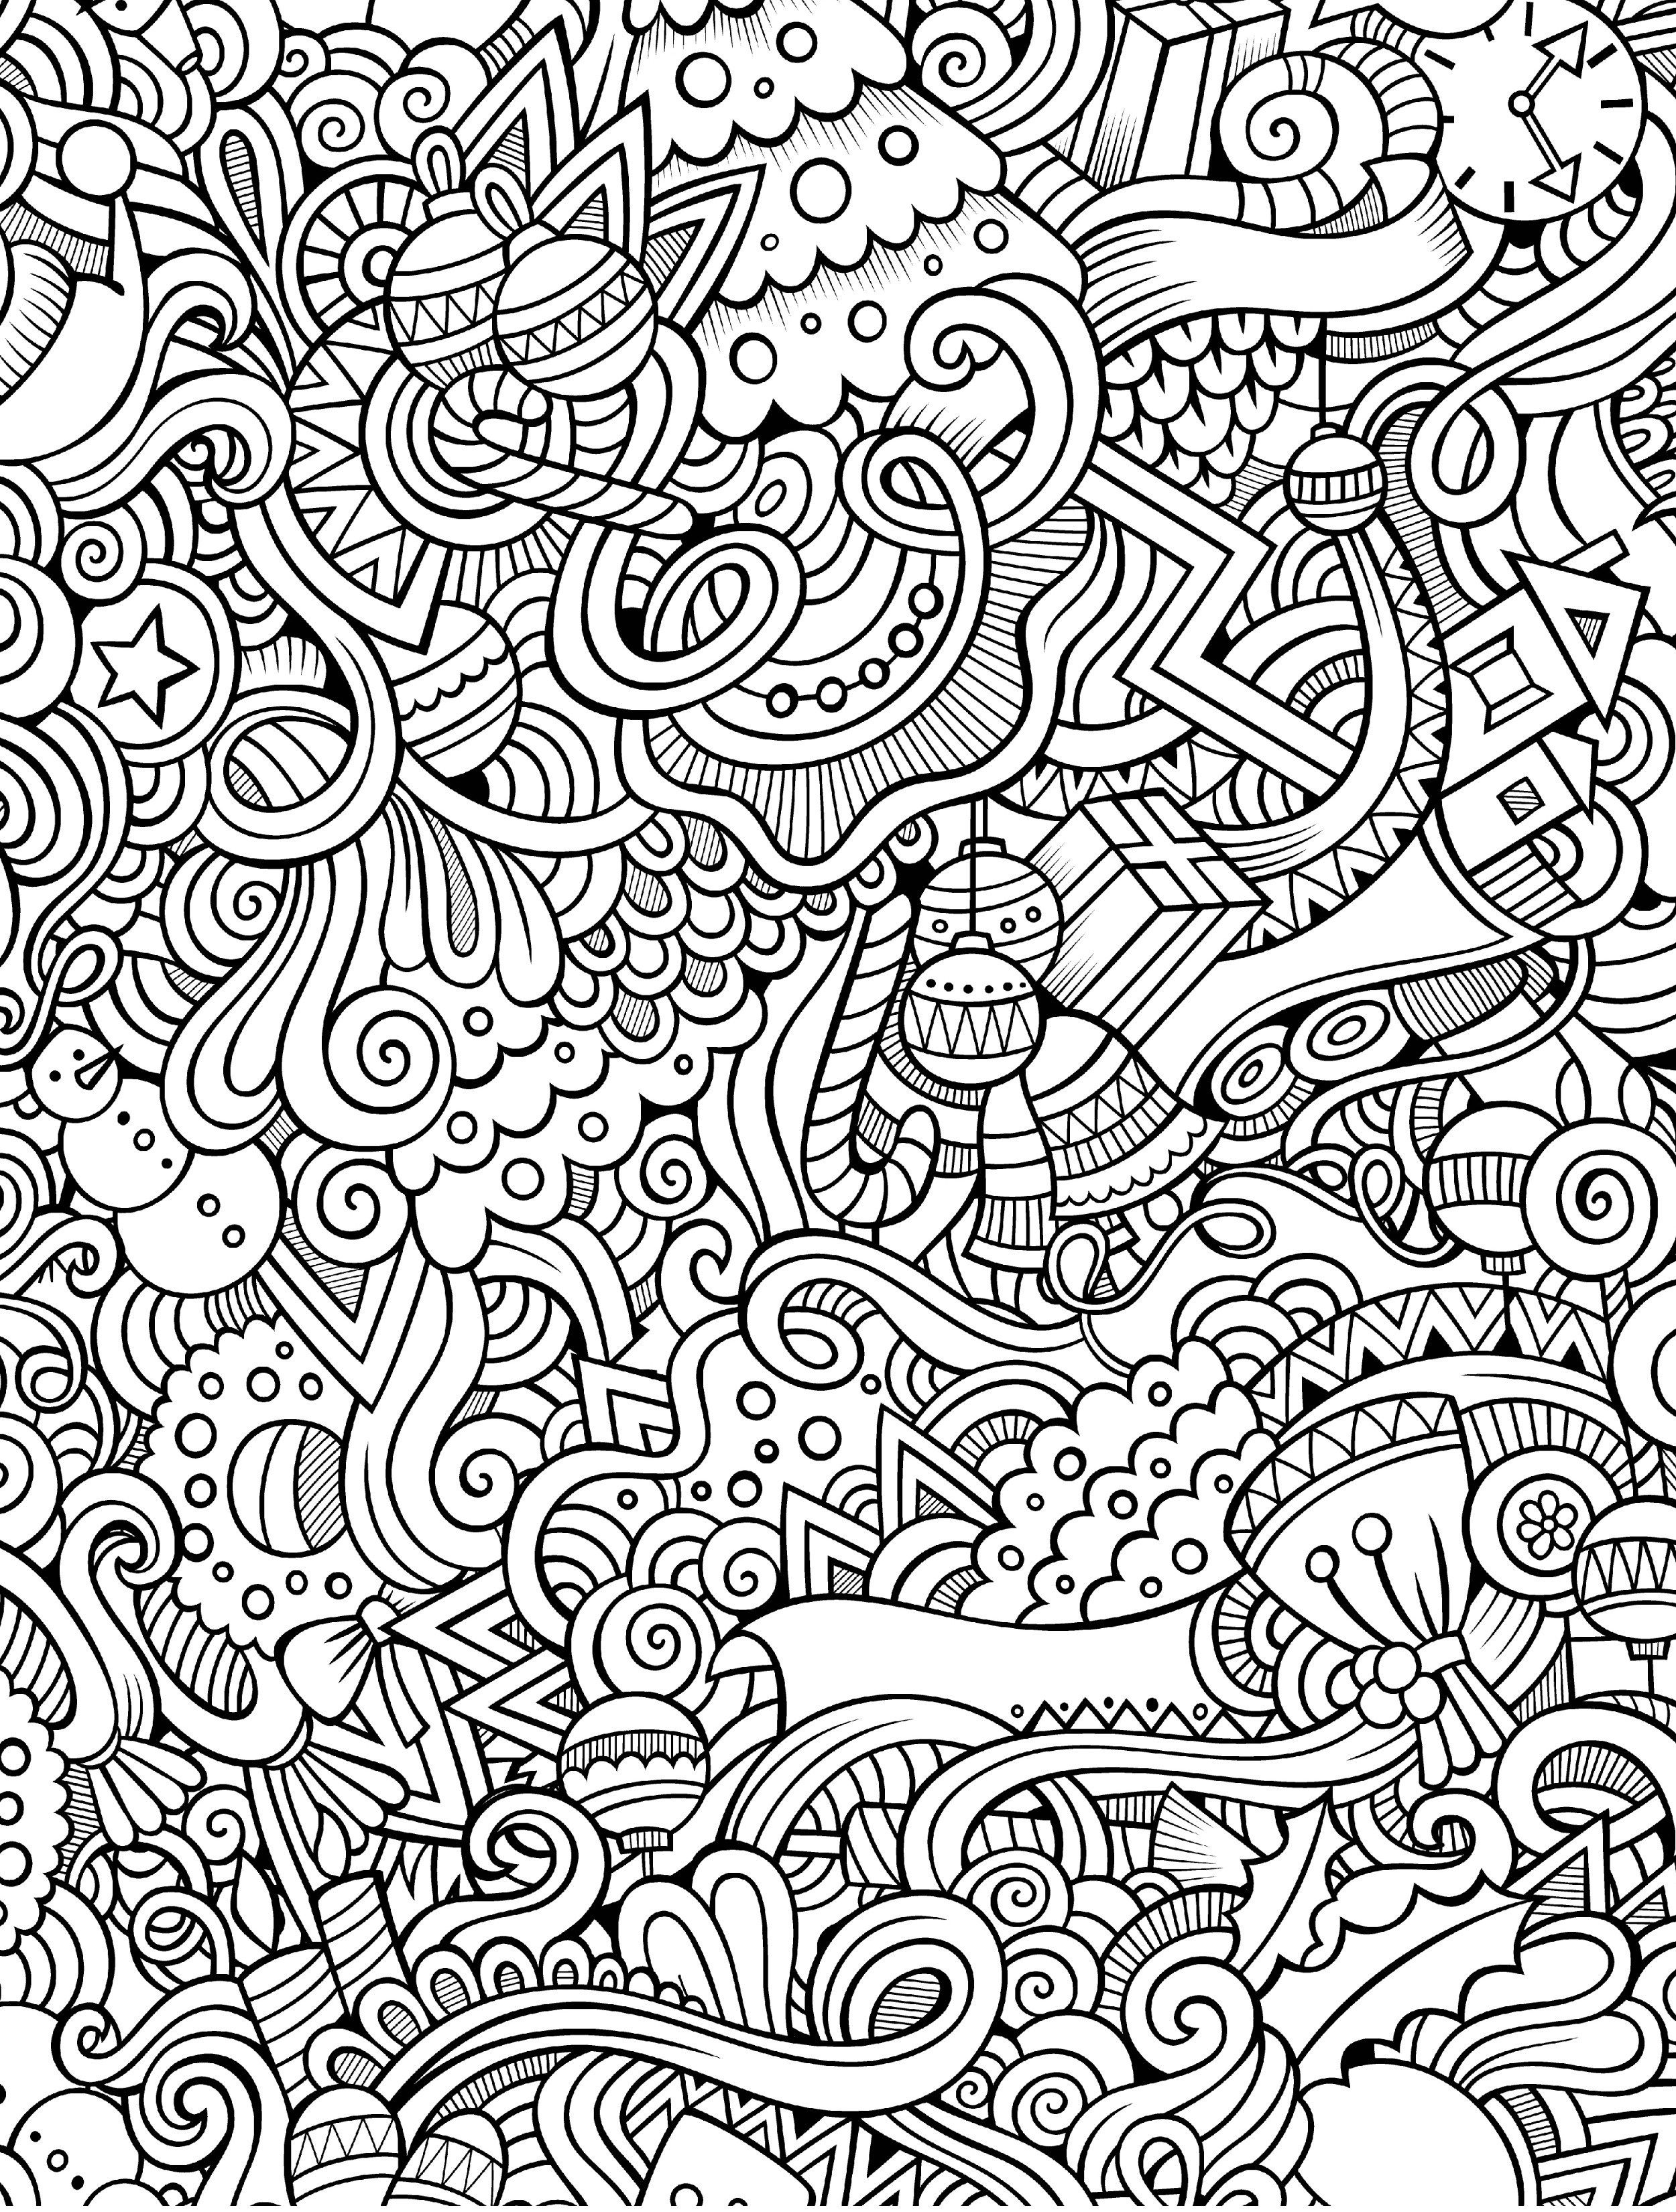 Christmas Coloring Pages To Print For Adults With 10 Free Printable Holiday Adult